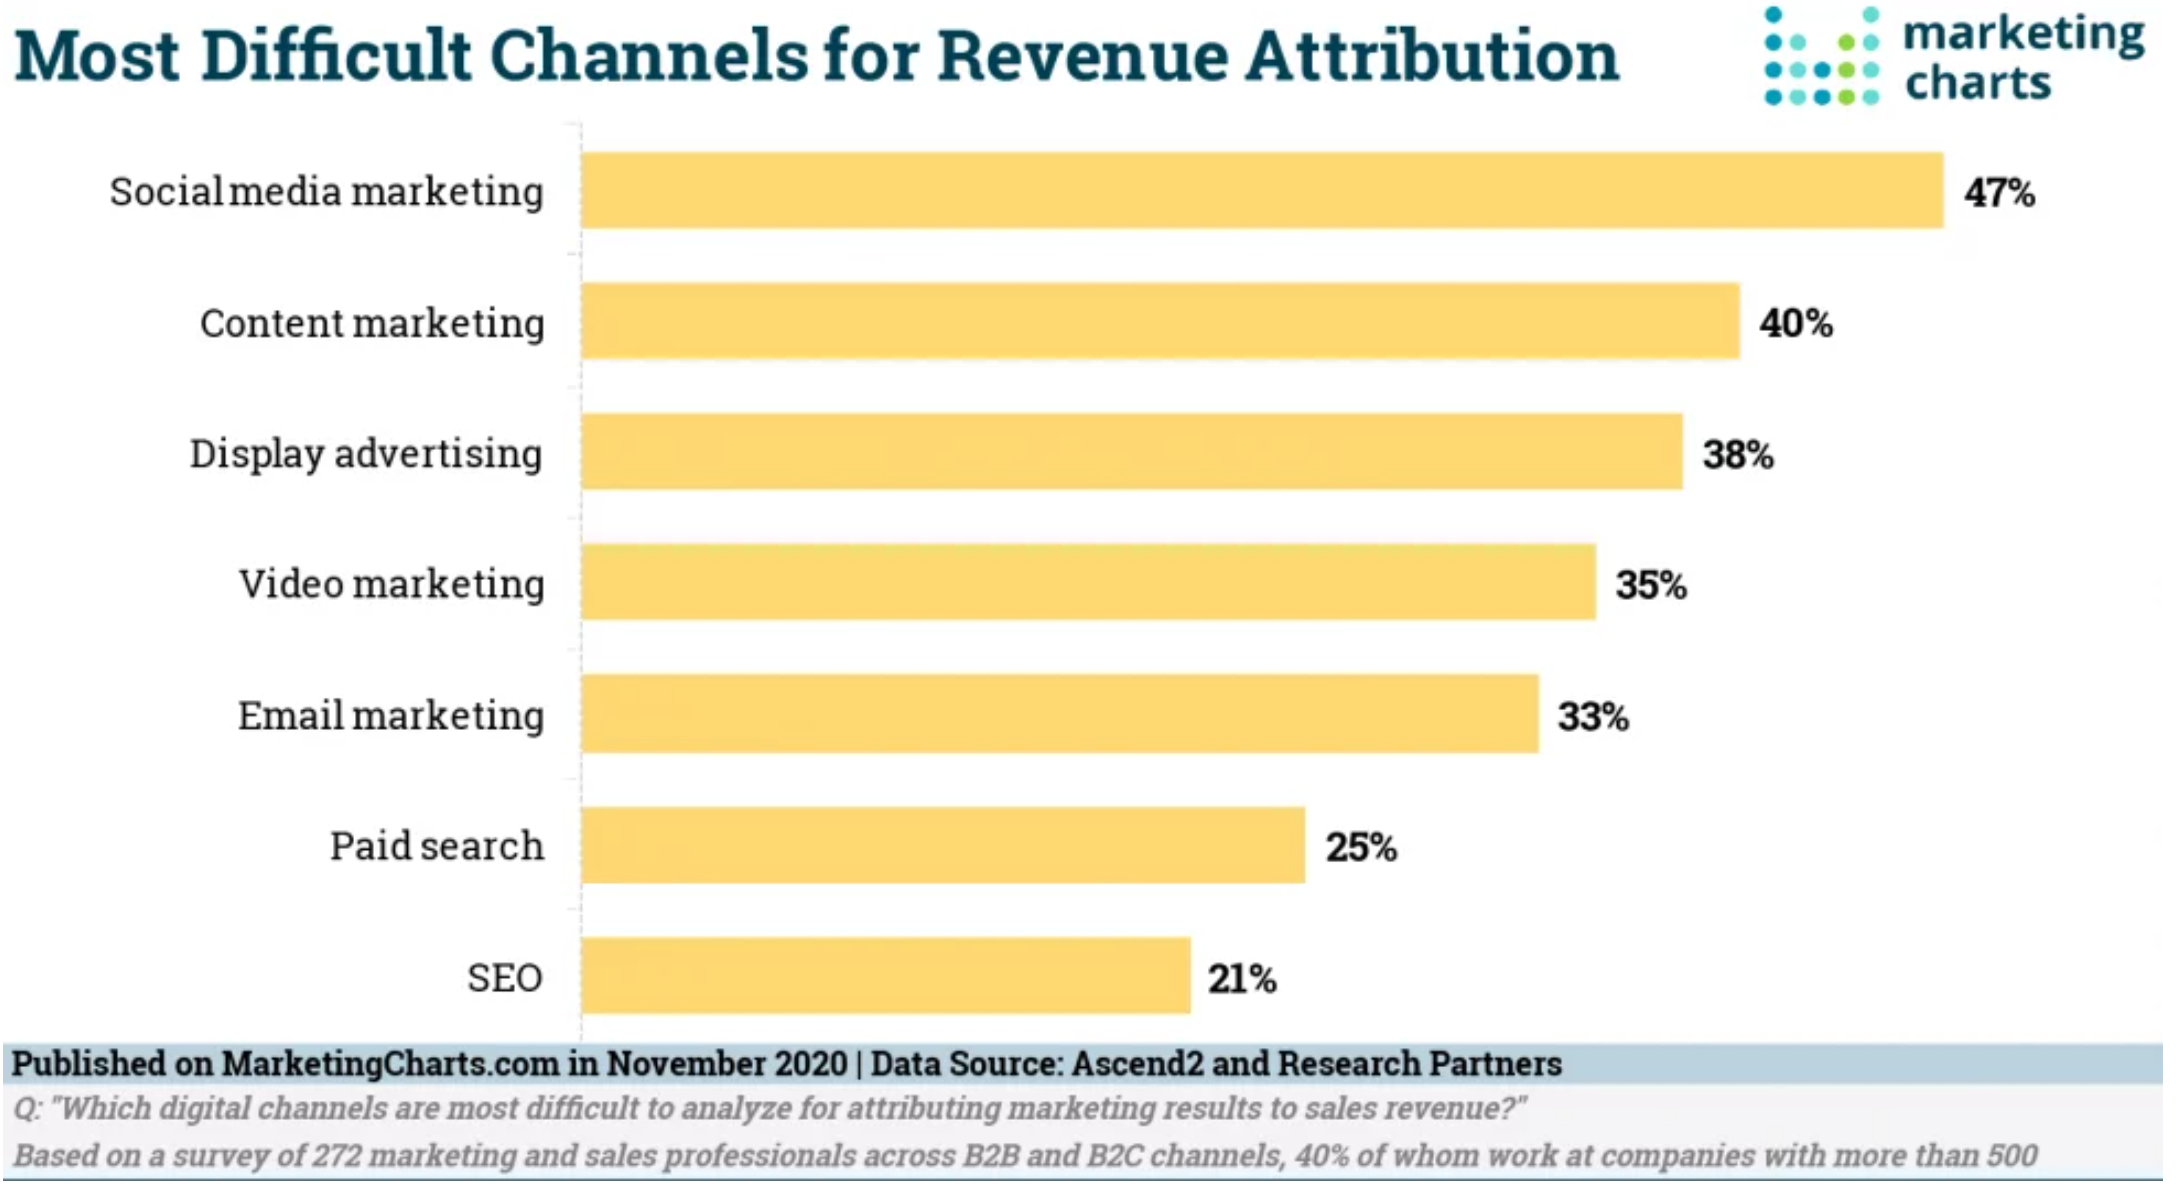 Marketers Most Difficult Channels to Attribute Revenue